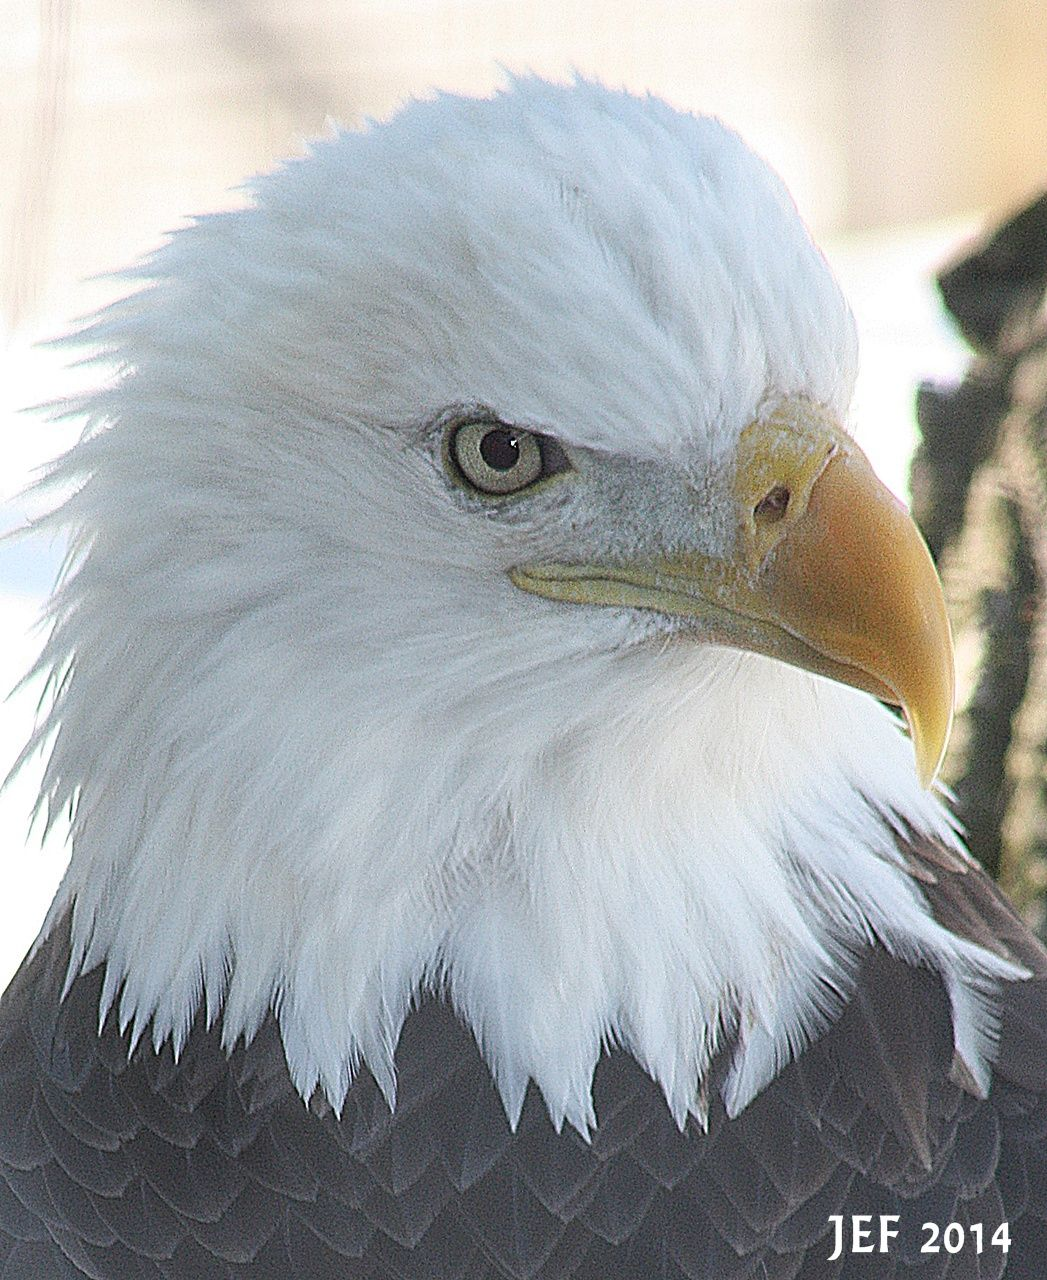 Eagle on display at the Toledo Zoo. He is unable to be